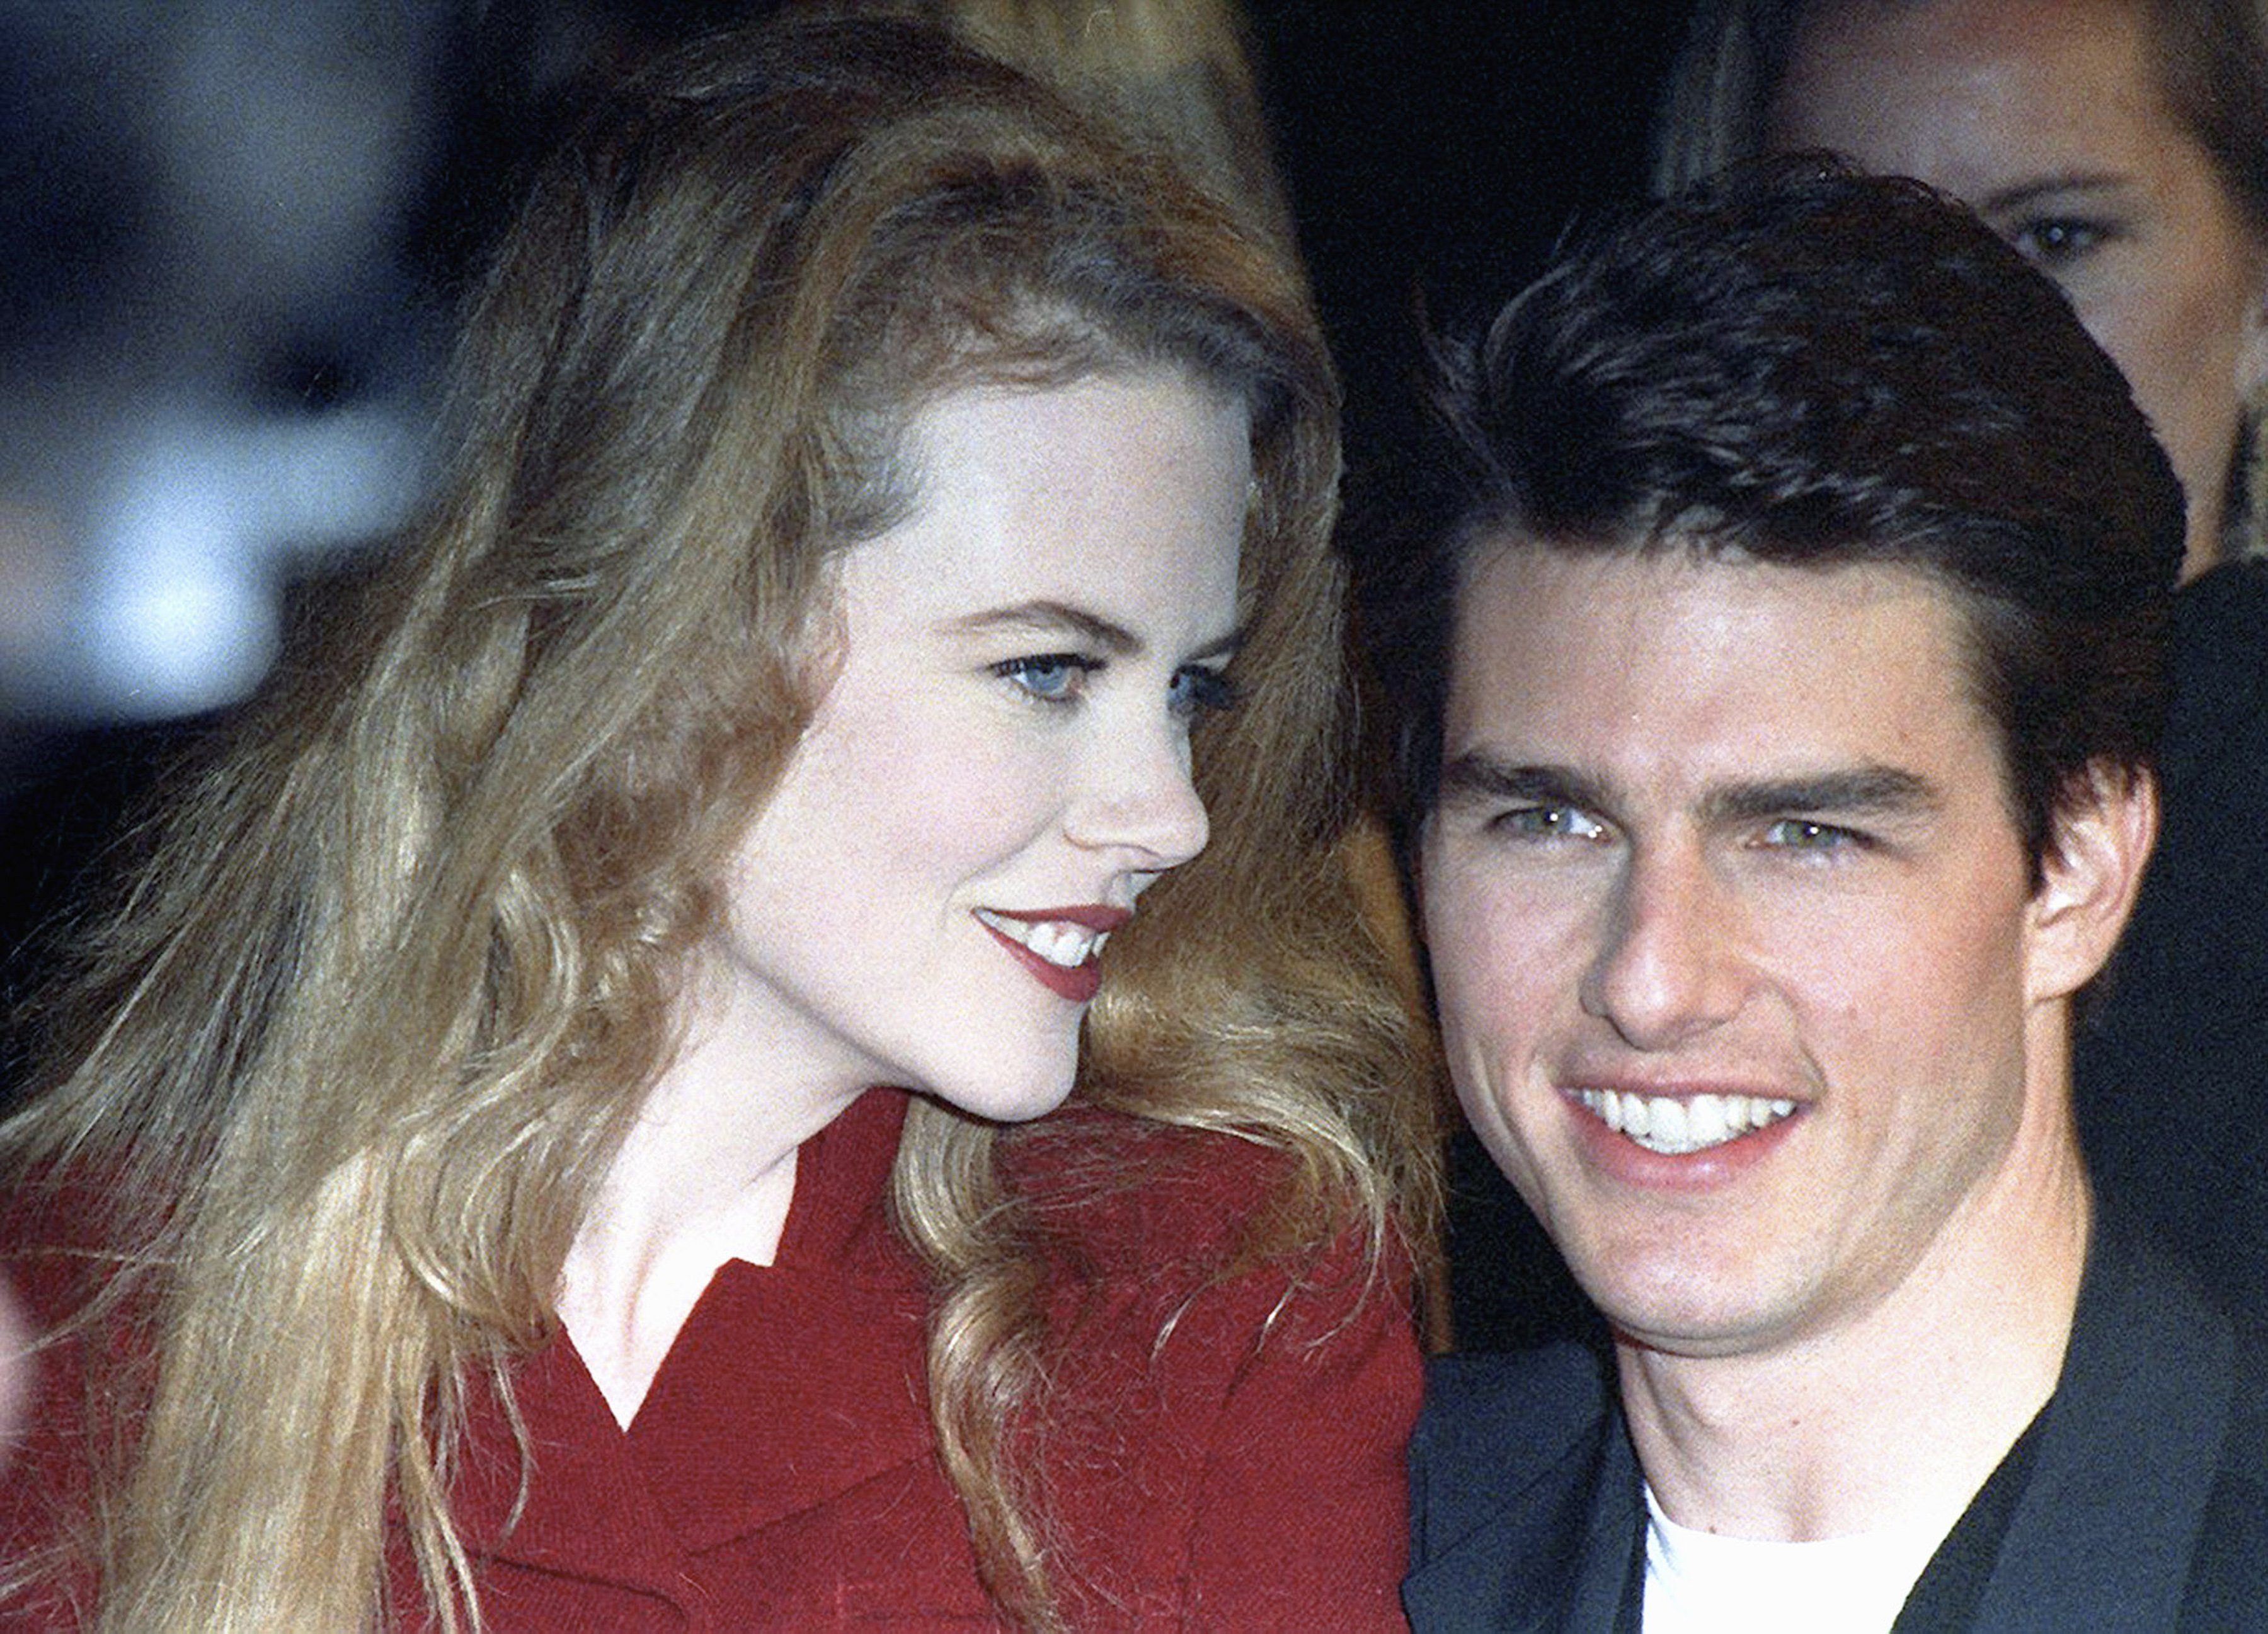 Nicole Kidman and Tom Cruise at the 'A Few Good Men' Westwood Premiere at Mann Village Theatre in Westwood, California | Photo: Kypros/Getty Images